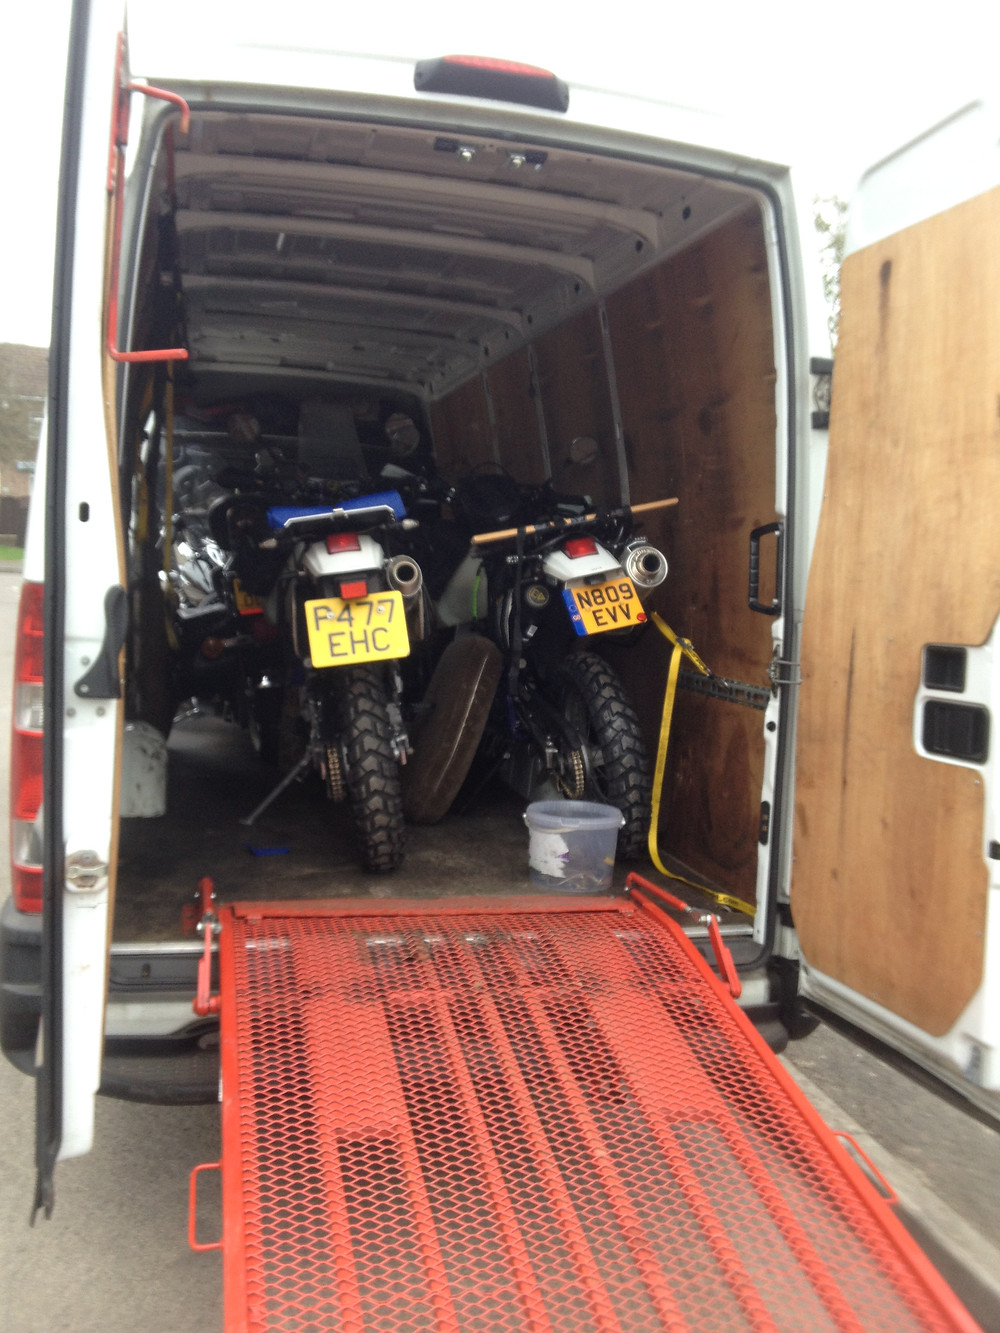 Bikes all loaded and secure